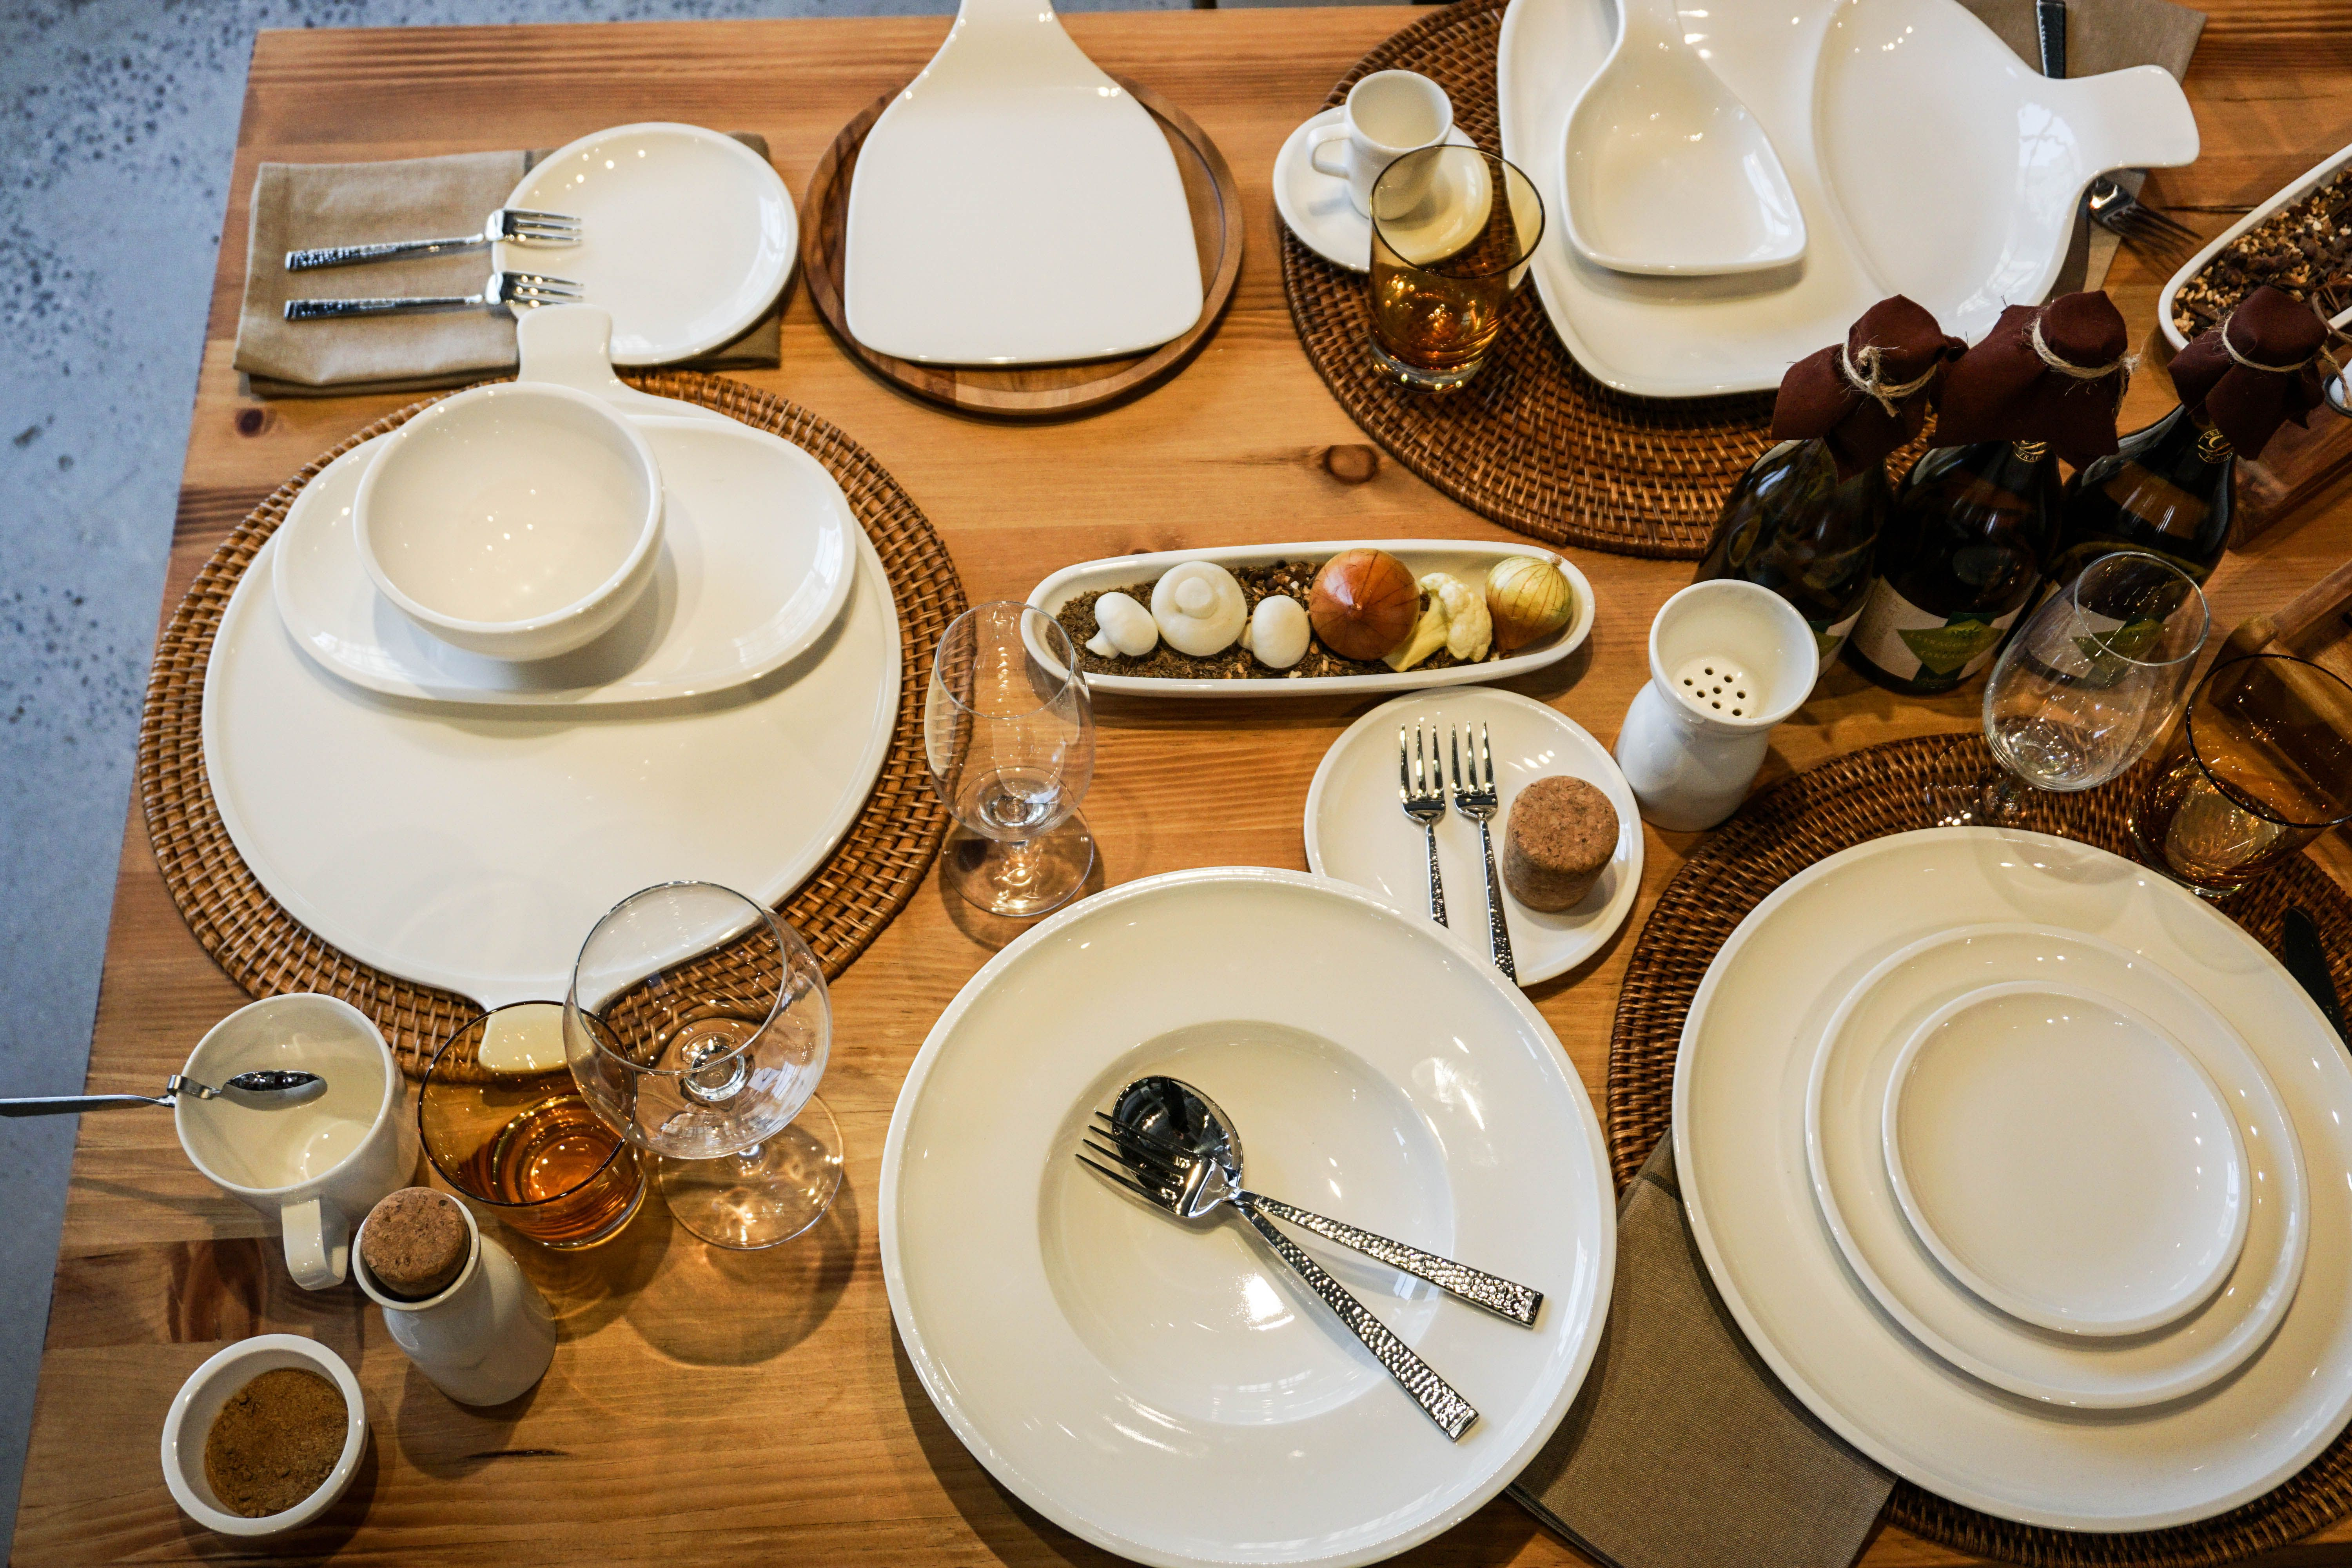 Inspired By A Farm To Table Philosophy This Casual Artesano Dinnerware By Villeroy Boch Adds A Beautiful Touch To An Dinnerware White Dinnerware Rustic Table